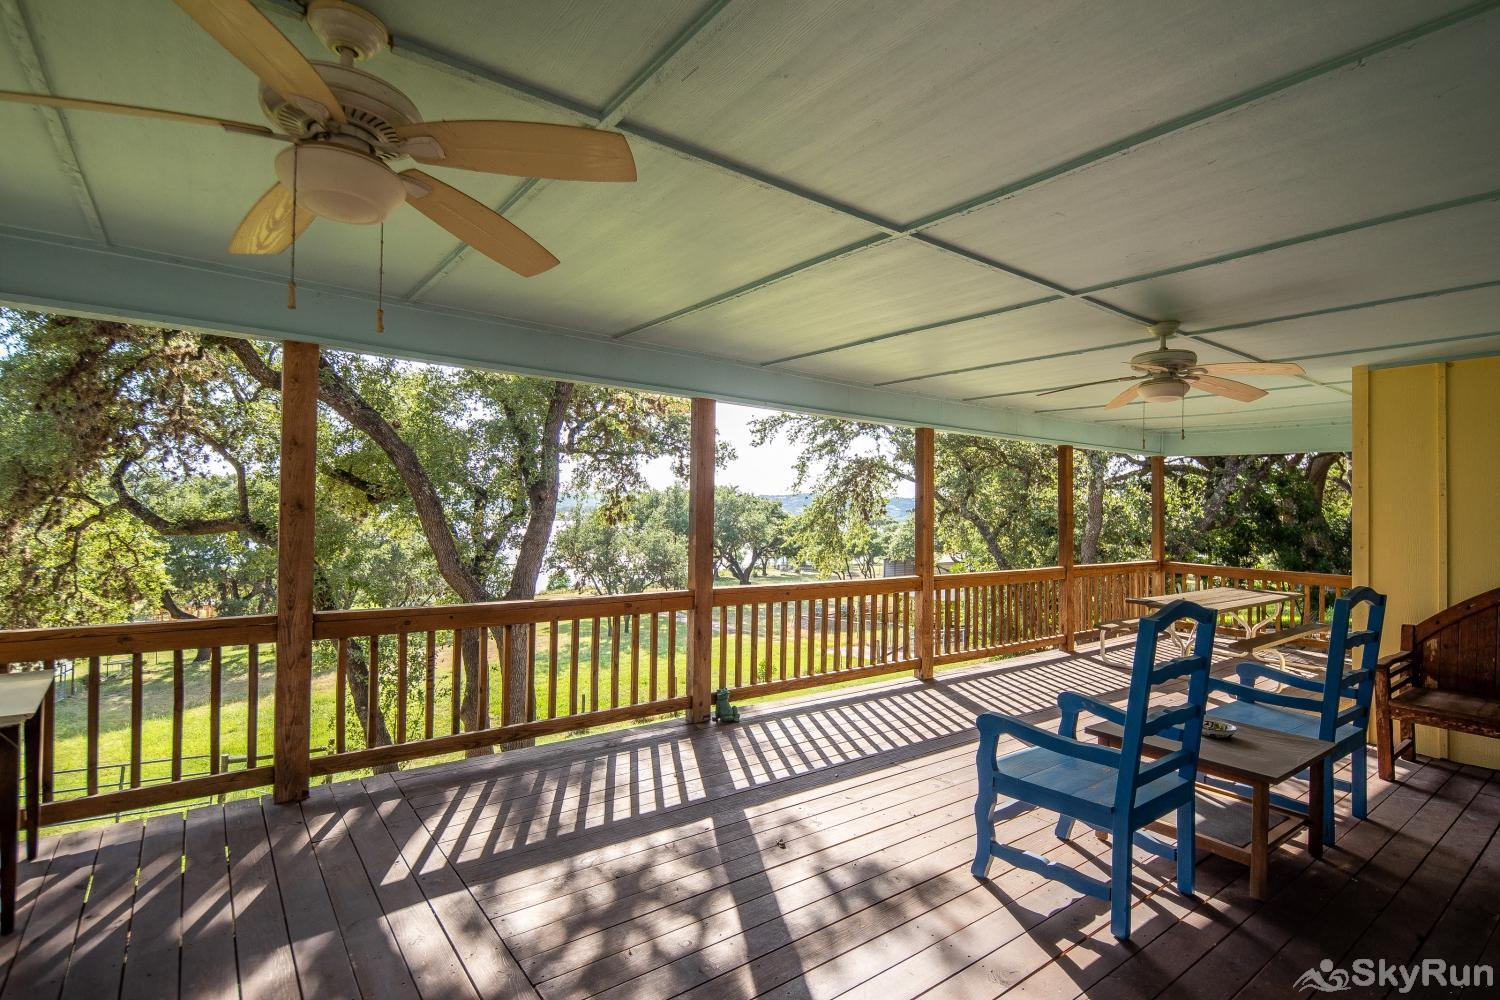 LAKESHORE ESCAPE Covered deck space